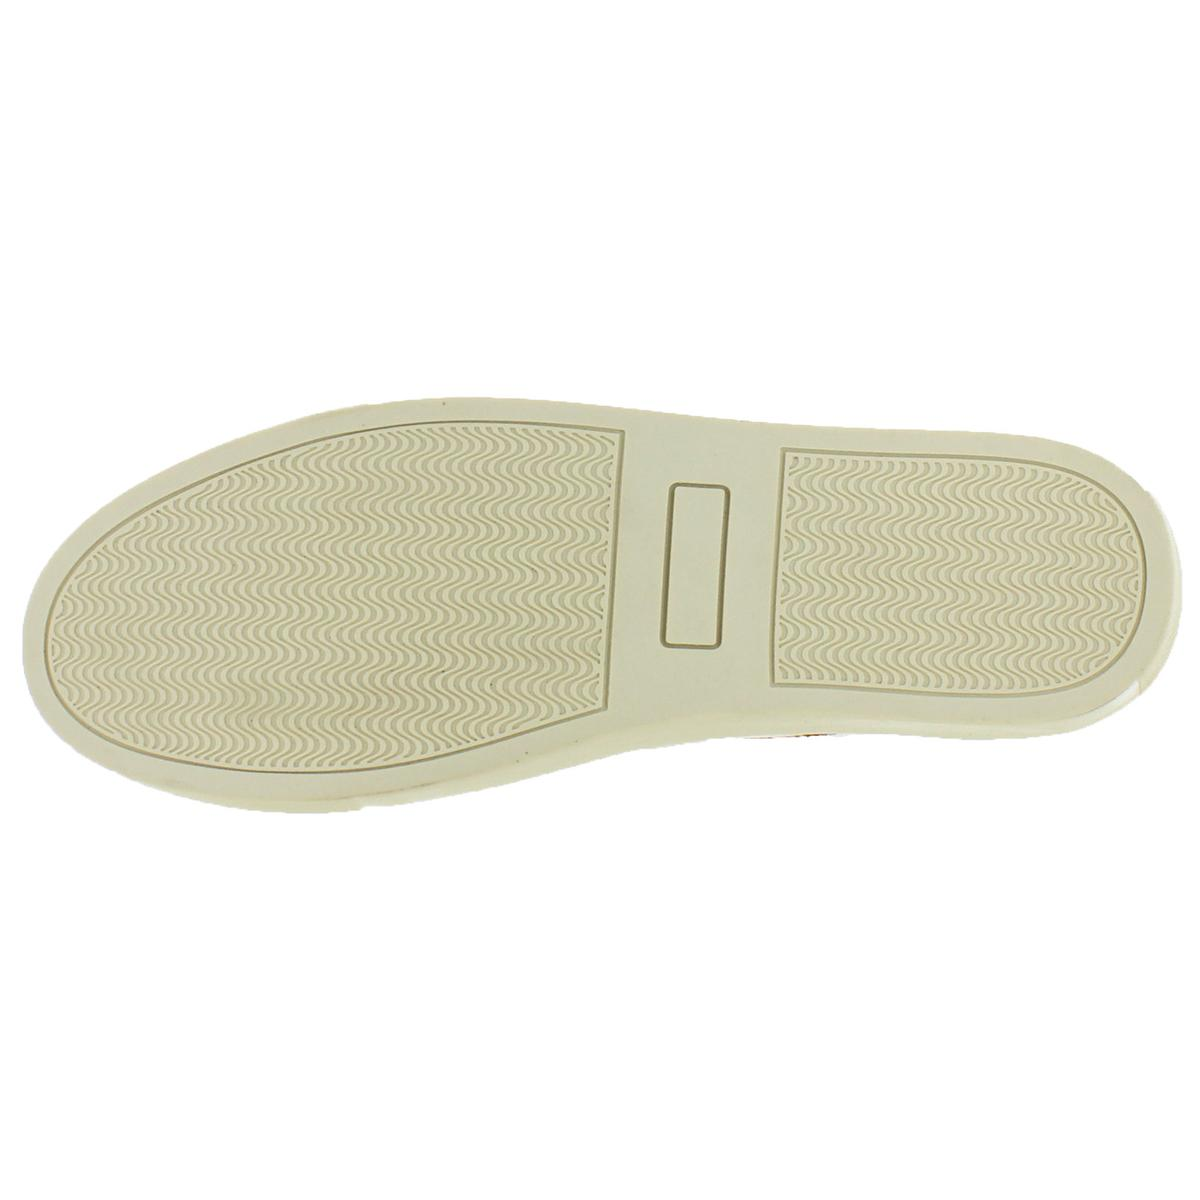 Pliner Mens Berkeley Padded Insole Fashion Sneakers Shoes BHFO 7707 Donald J